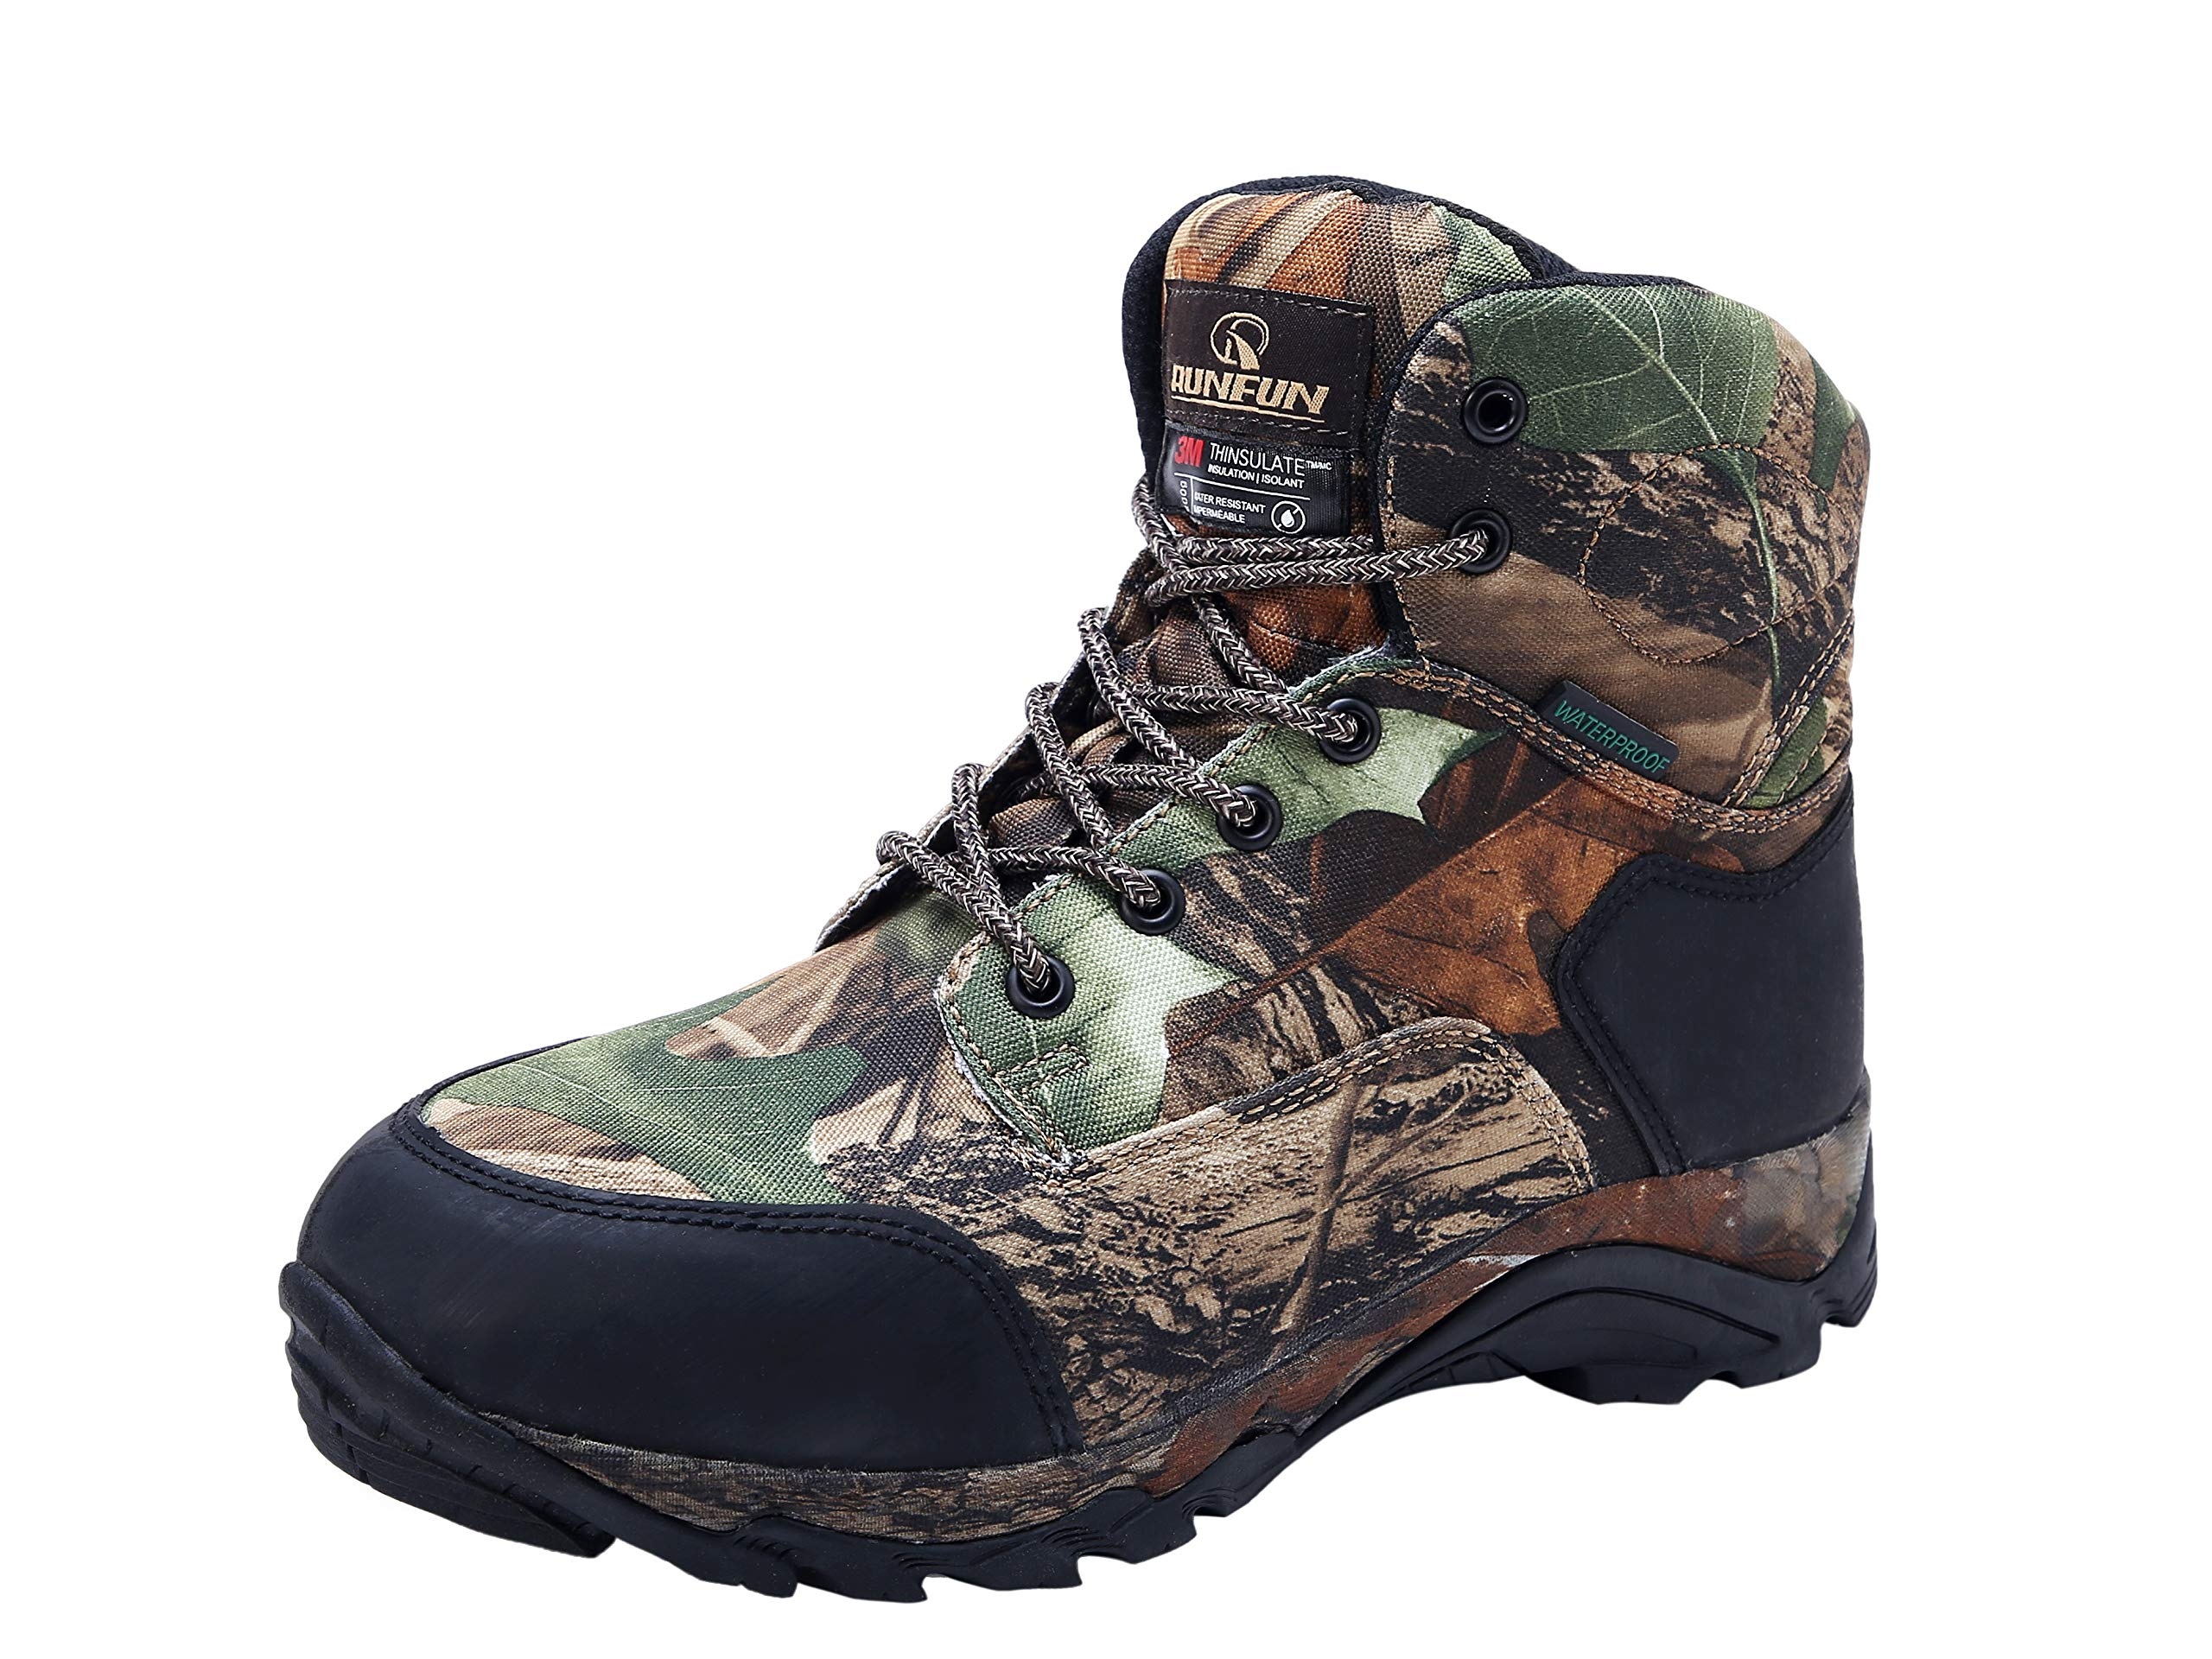 R RUNFUN Men's Lightweight Waterproof Hunting Boots Camouflage Outdoor